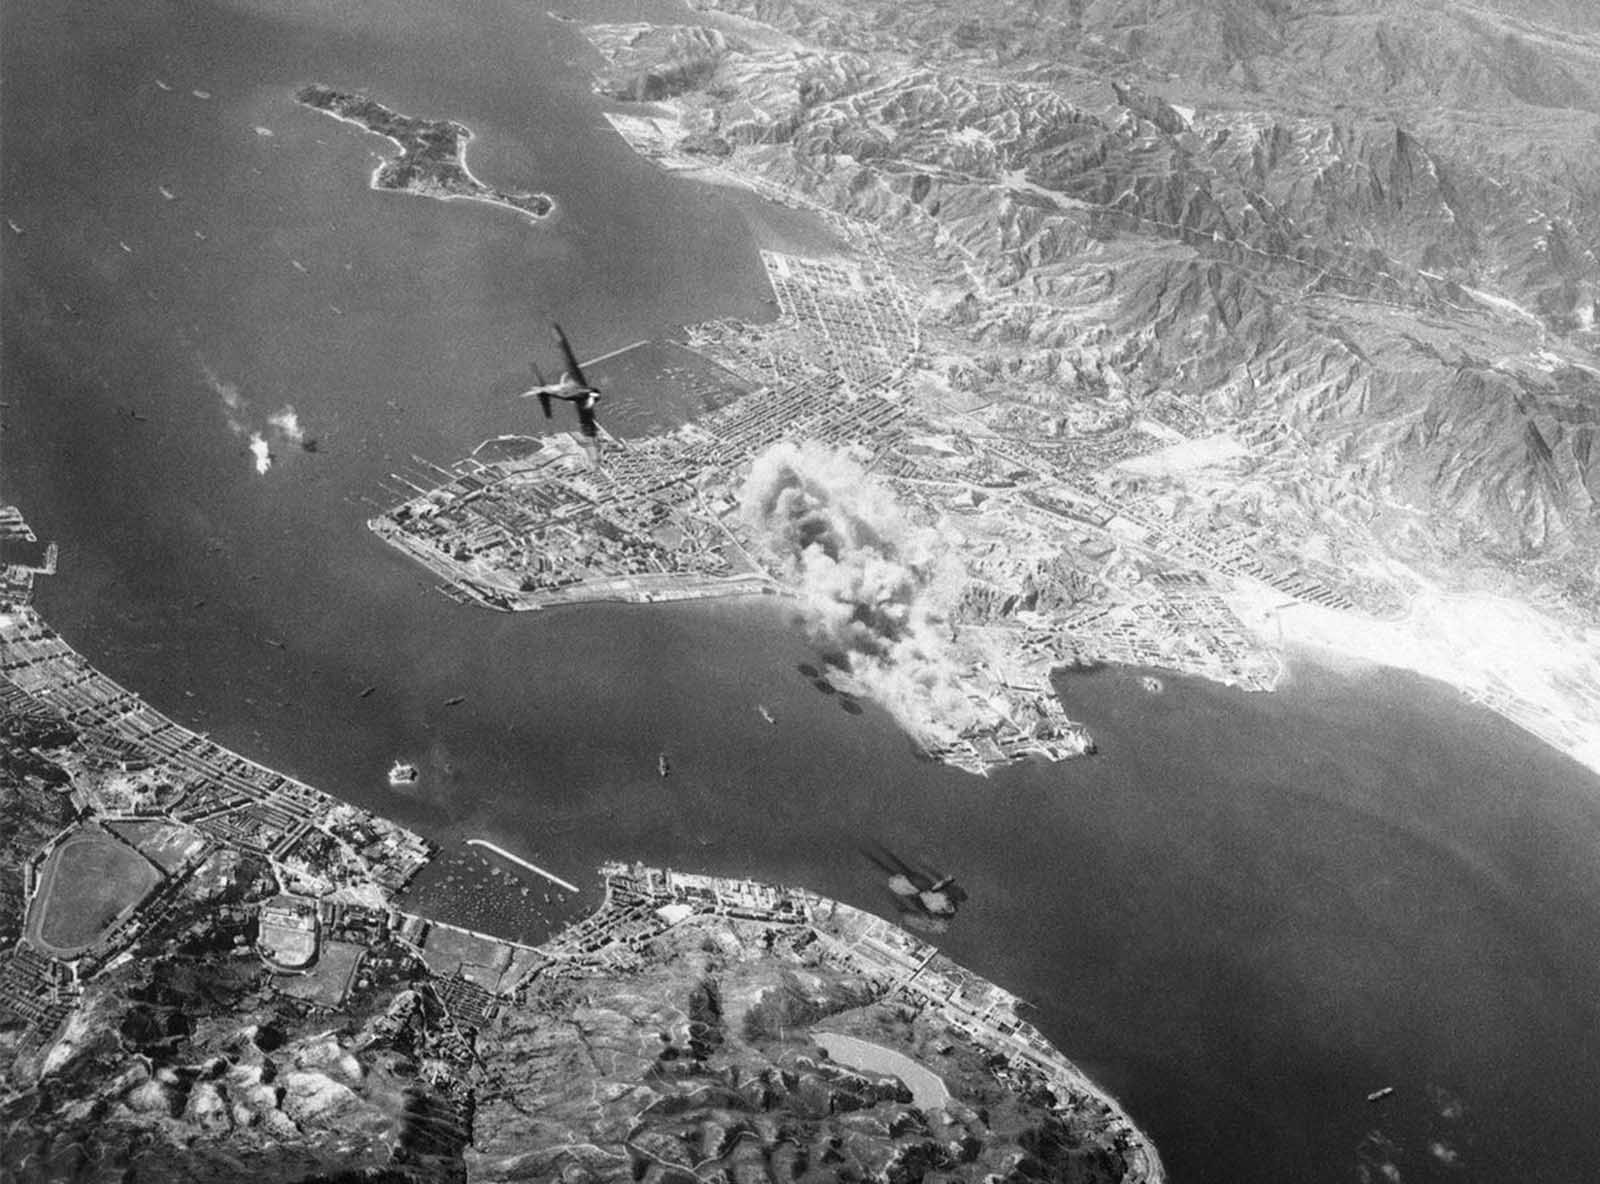 Smoke billows up from the Kowloon Docks and railroad yards after a surprise bombing attack on Hong Kong harbor by the U.S. Army 14th Air Force October 16, 1944. A Japanese fighter plane (left center) turns in a climb to attack the bombers. Between the Royal Navy yard, left, enemy vessels spout flames, and just outside the boat basin, foreground, another ship has been hit.